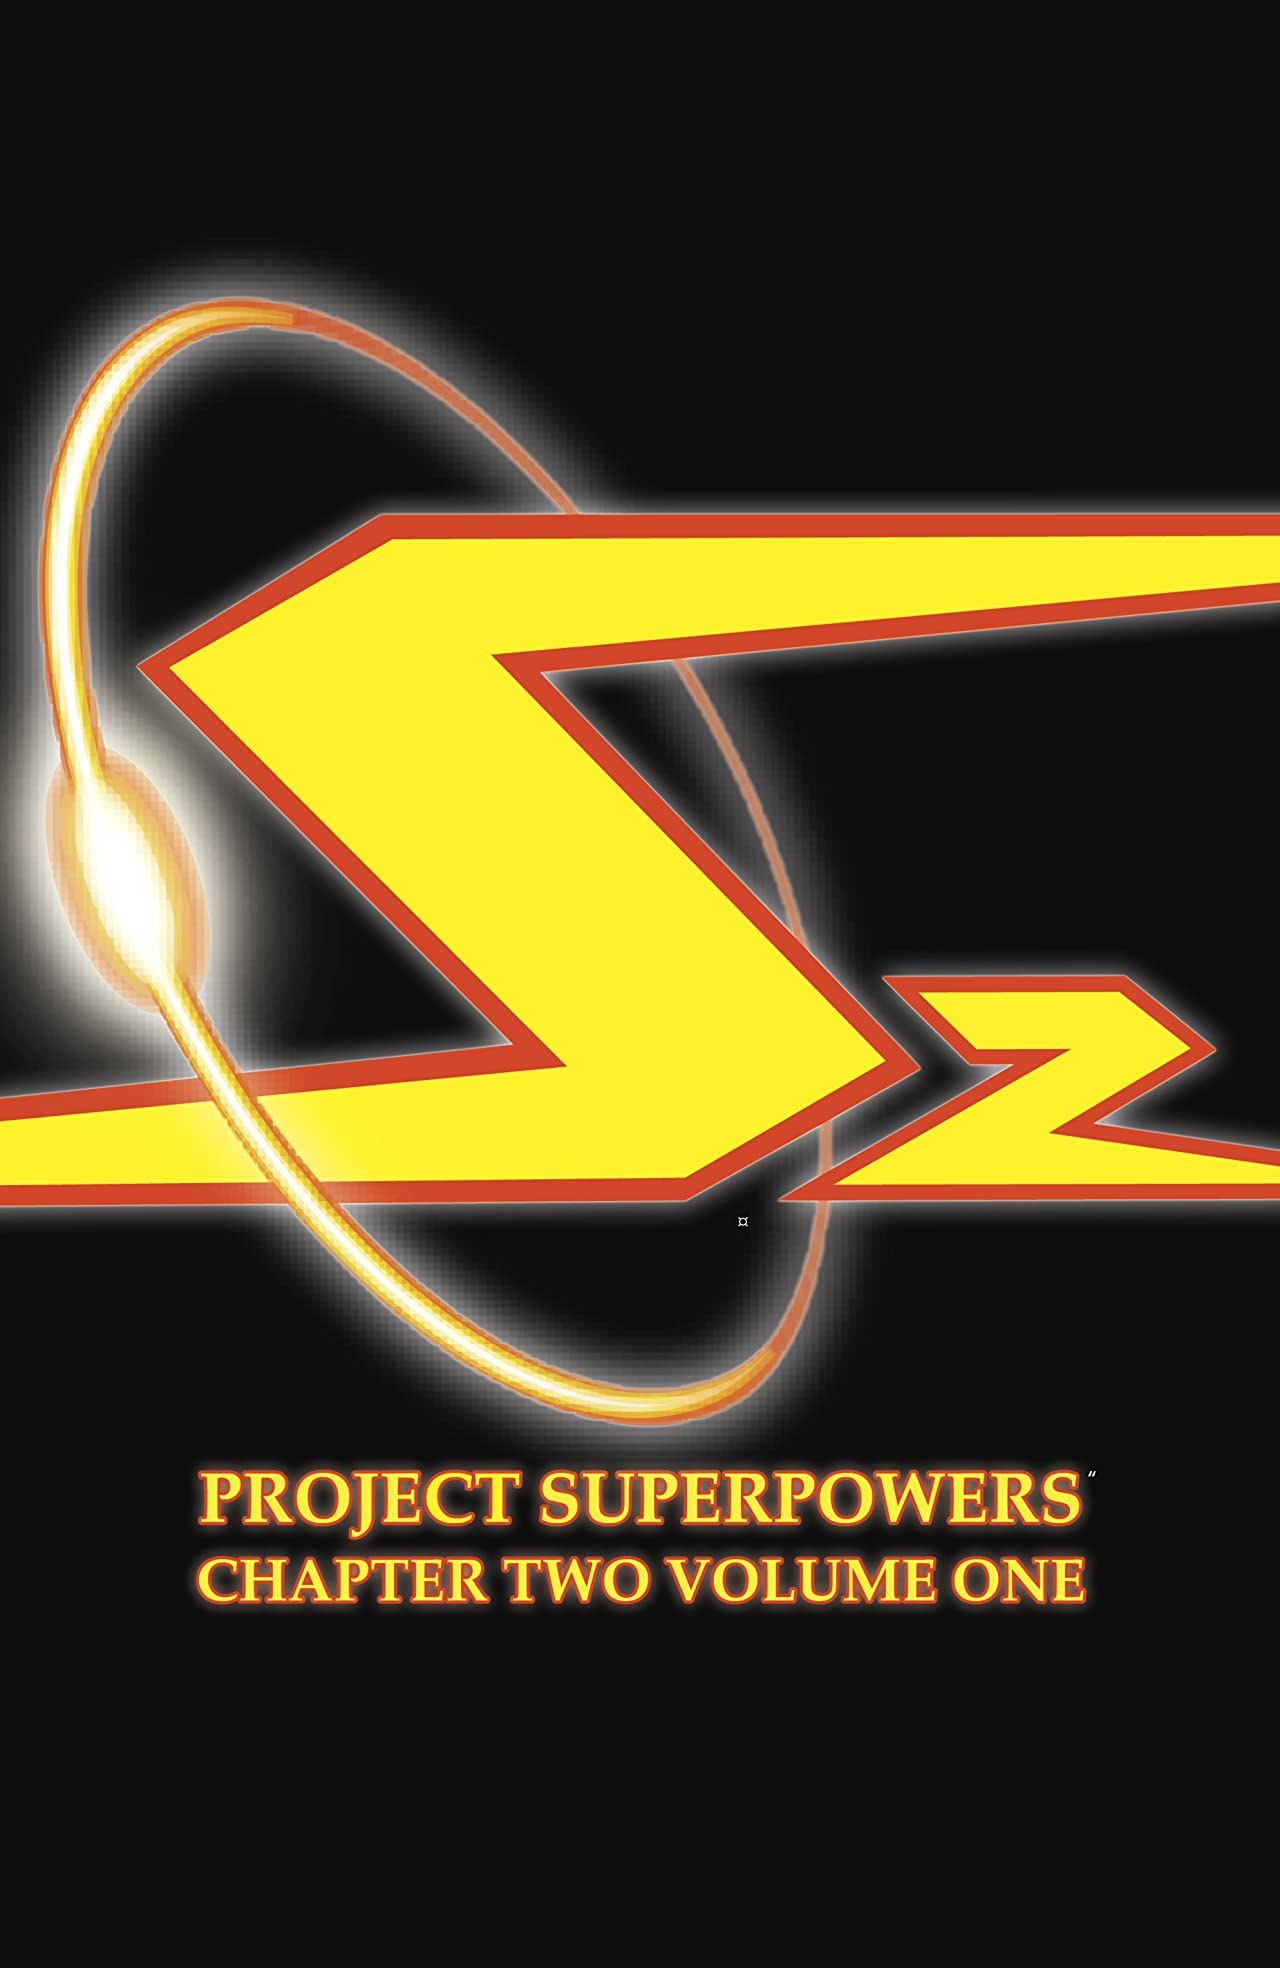 Project Superpowers: Chapter Two Vol. 1